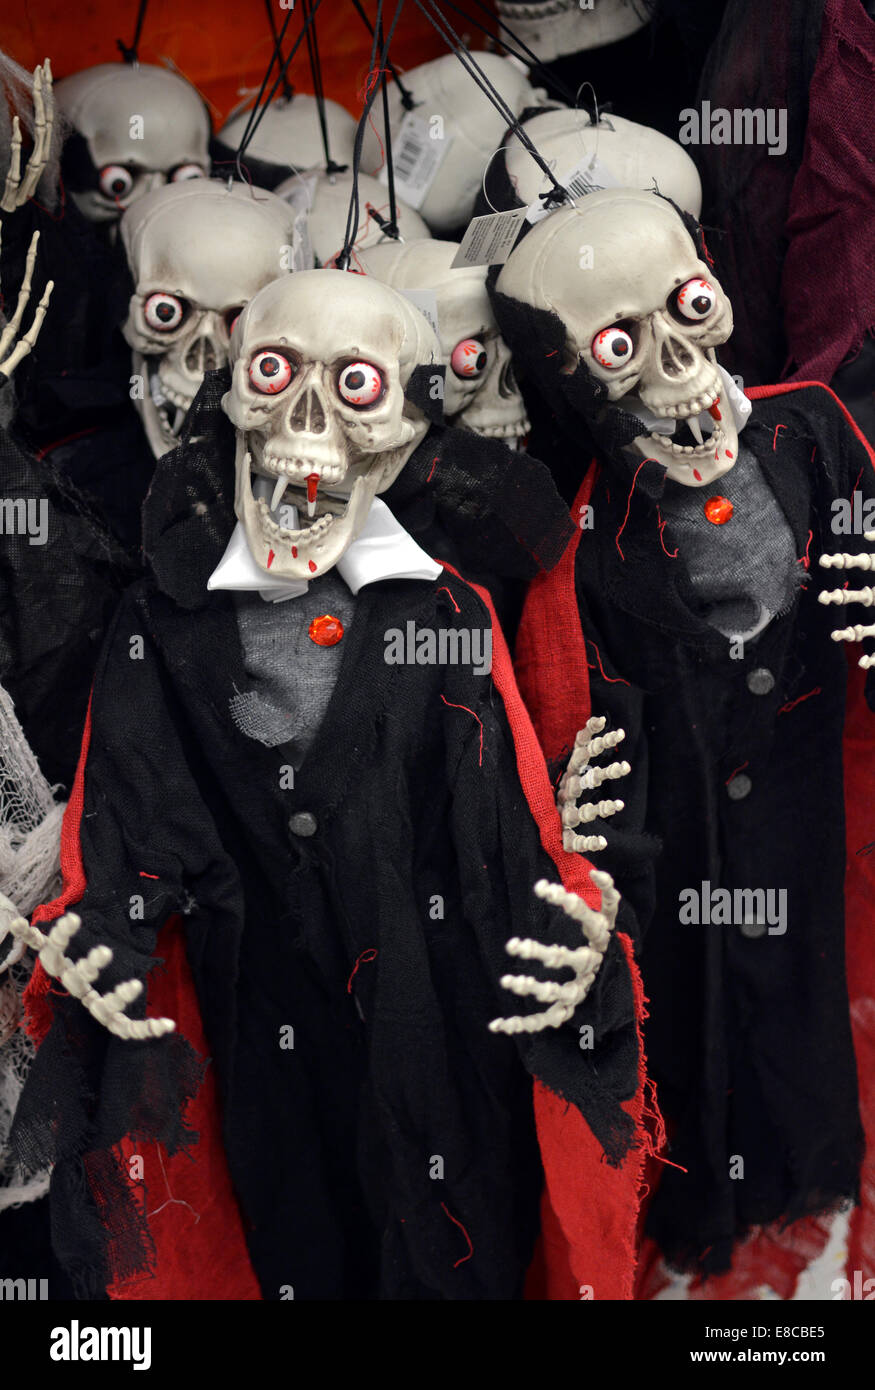 Superb Display Of Halloween Decorations For Sale At The Party City ...